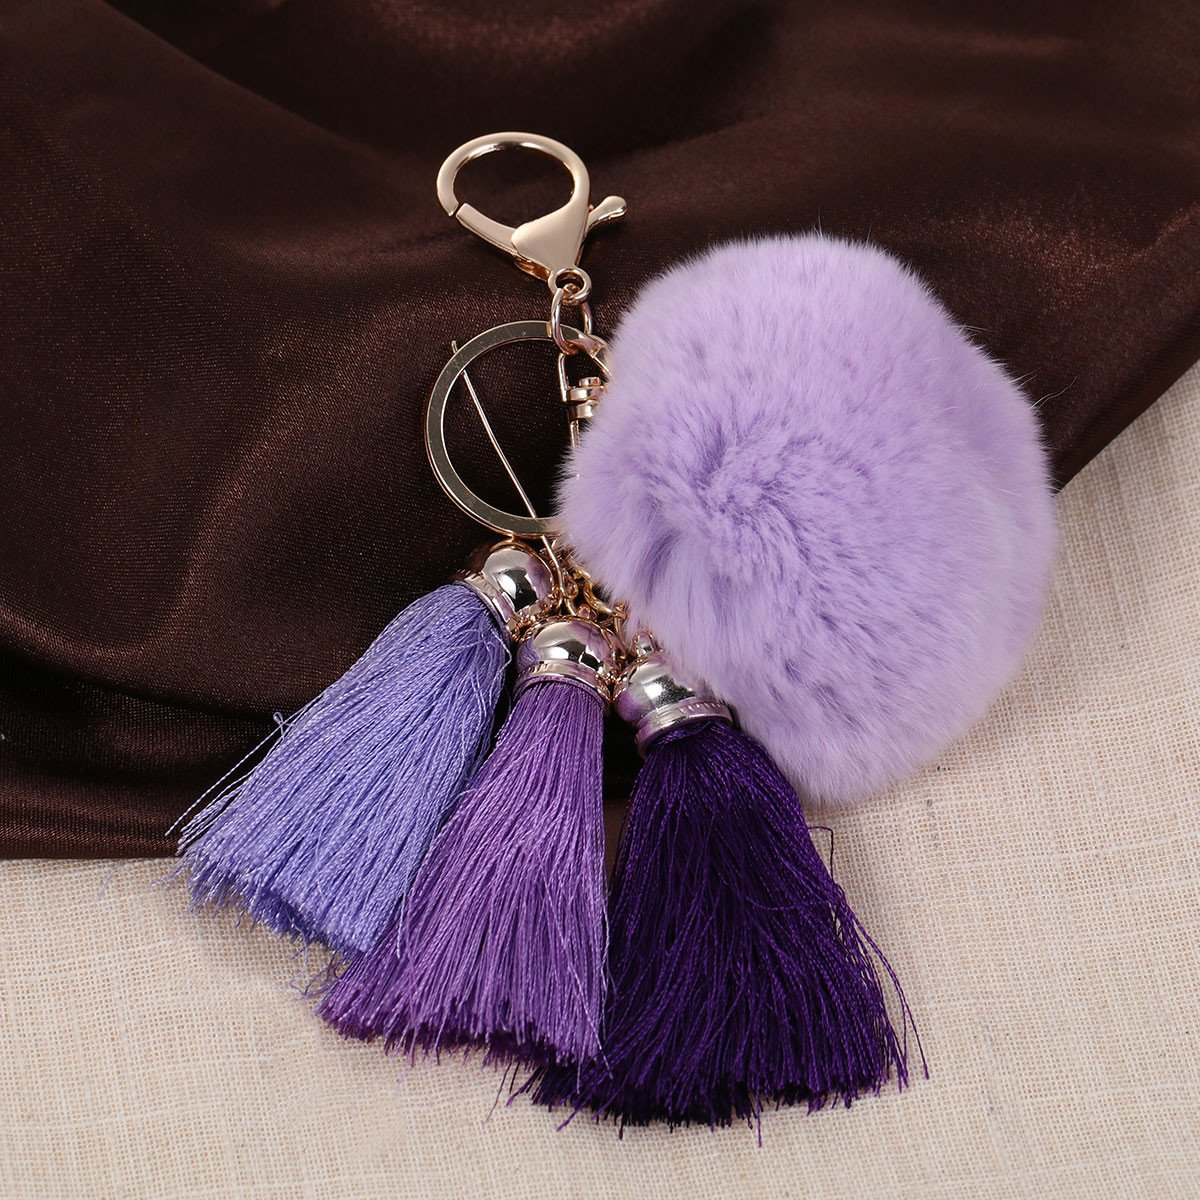 Sexy Sparkles New Fashion Key Chains Key Rings Lobster Clasp Gold Plated Pompom Ball Pendant With Rayon Tassel